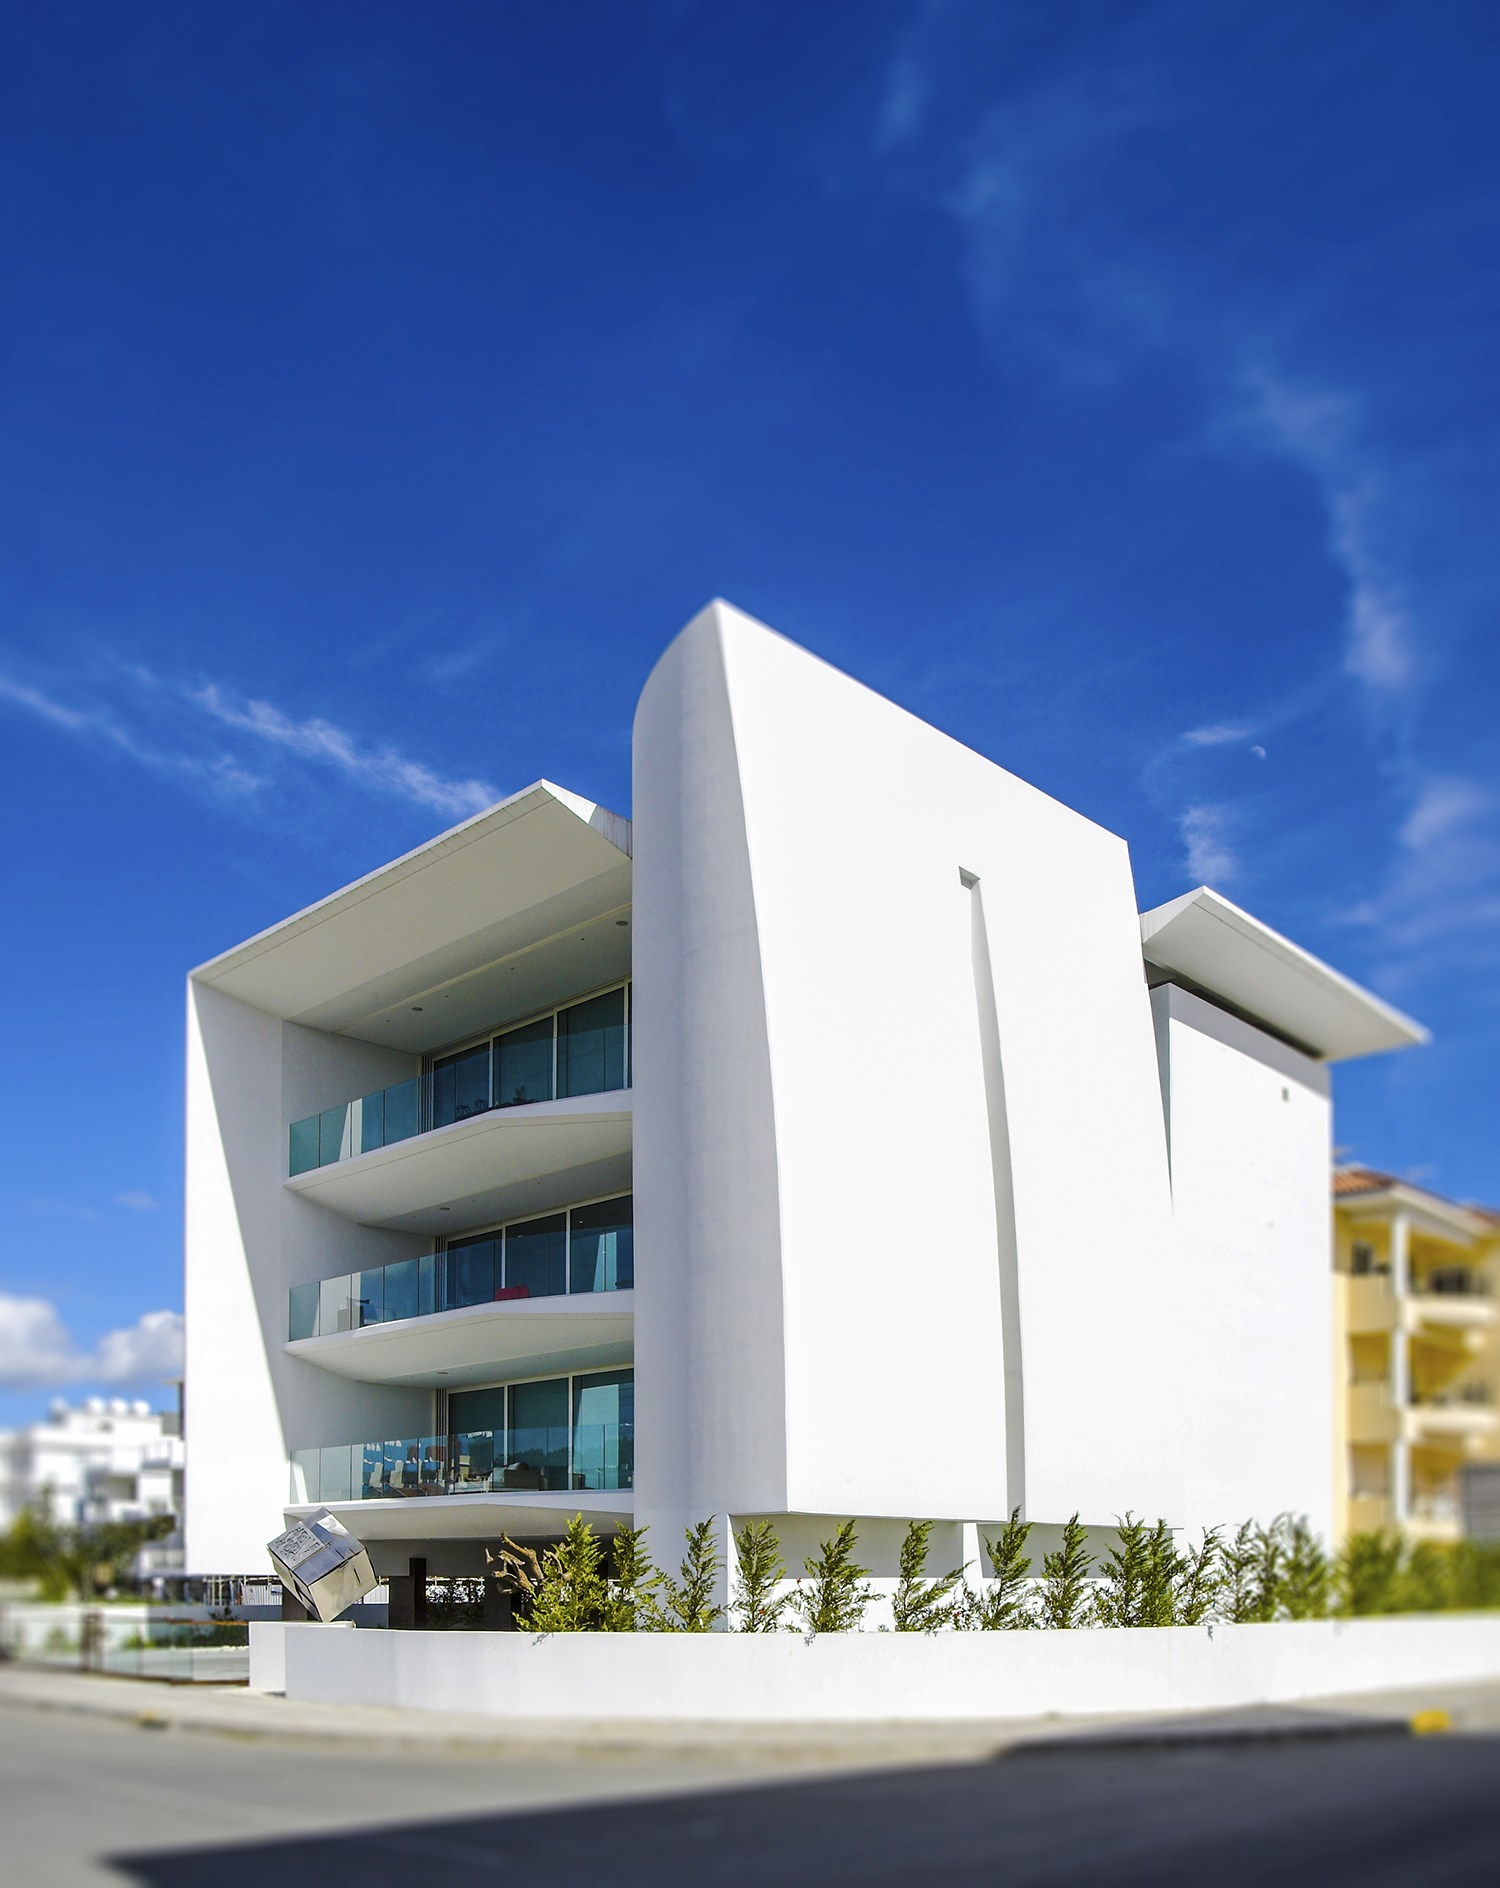 Proton by constantinos kalisperas architectural studio for Commercial building elevation photos